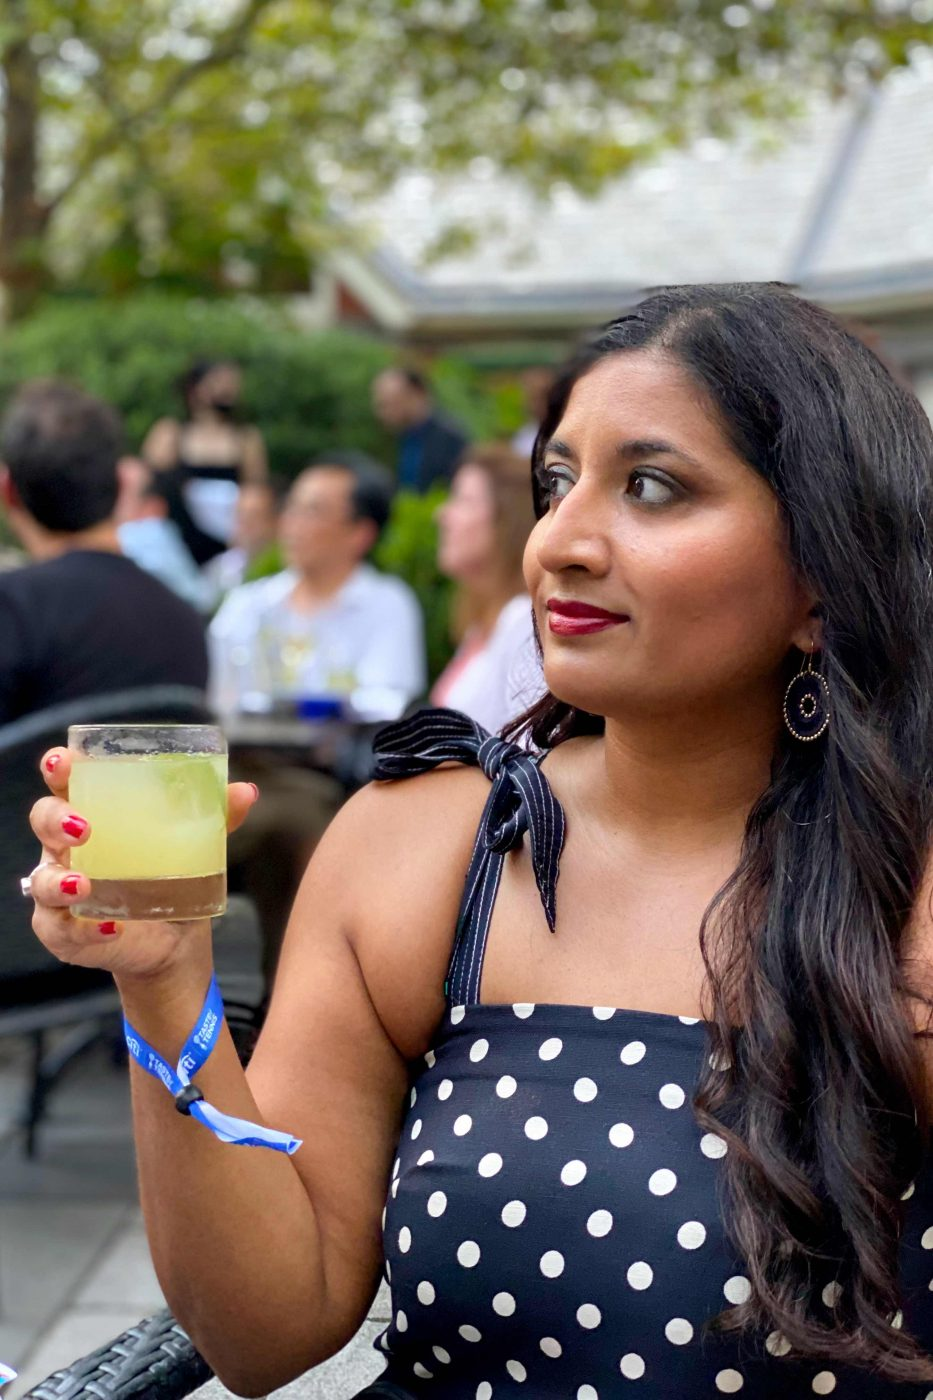 Taste of Tennis 2021 – Tavern on the Green - Woman with a Cocktail